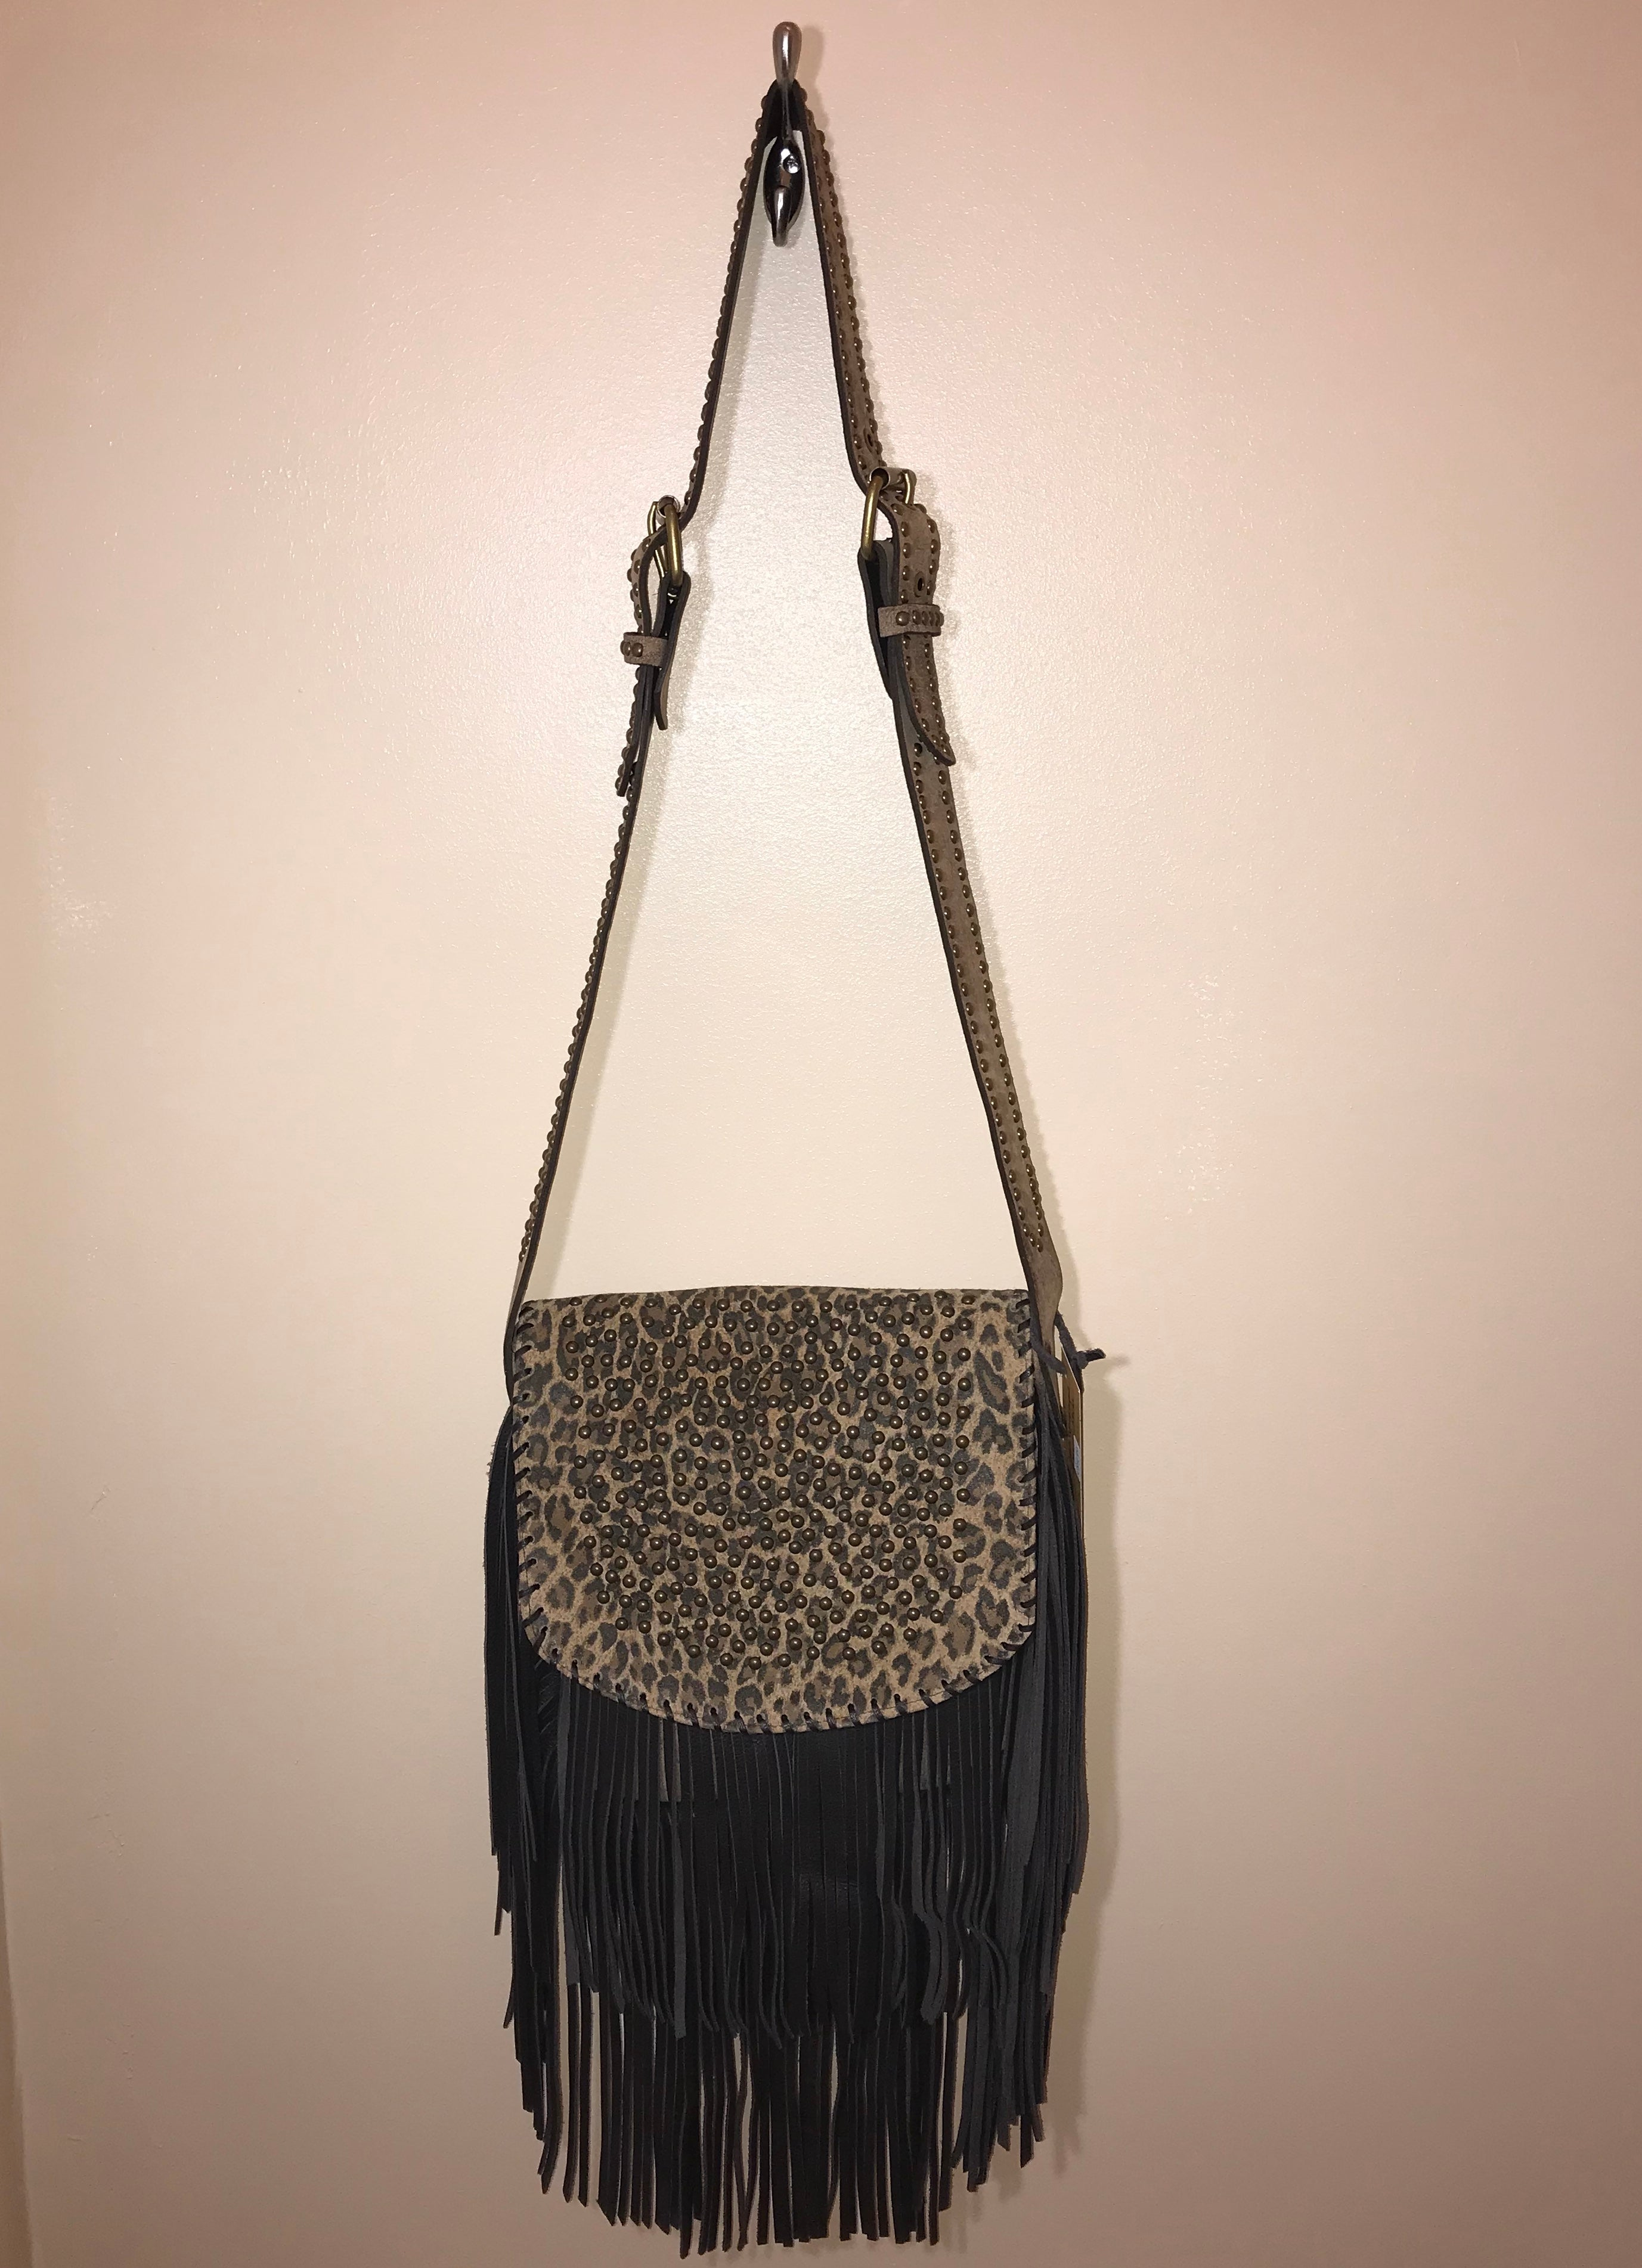 The Miranda Purse - Ny Texas Style Boutique